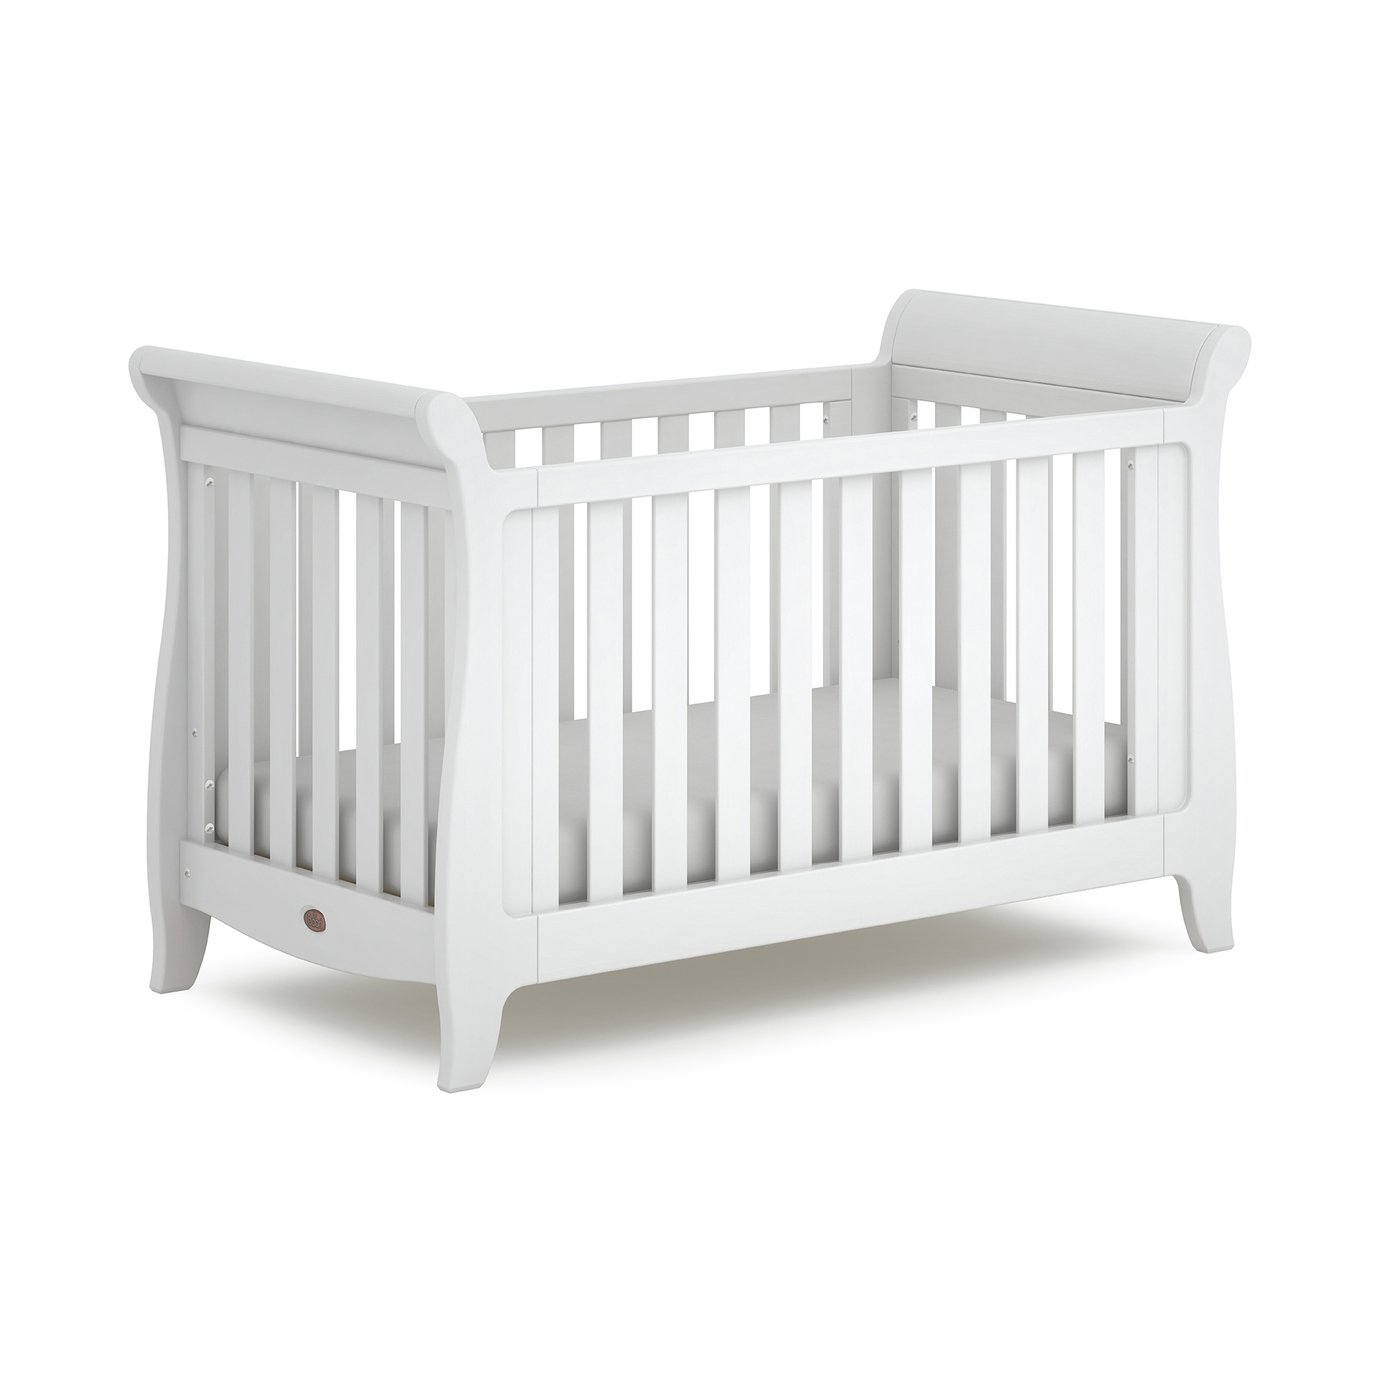 Boori Sleigh Expandable Cot Bed - White